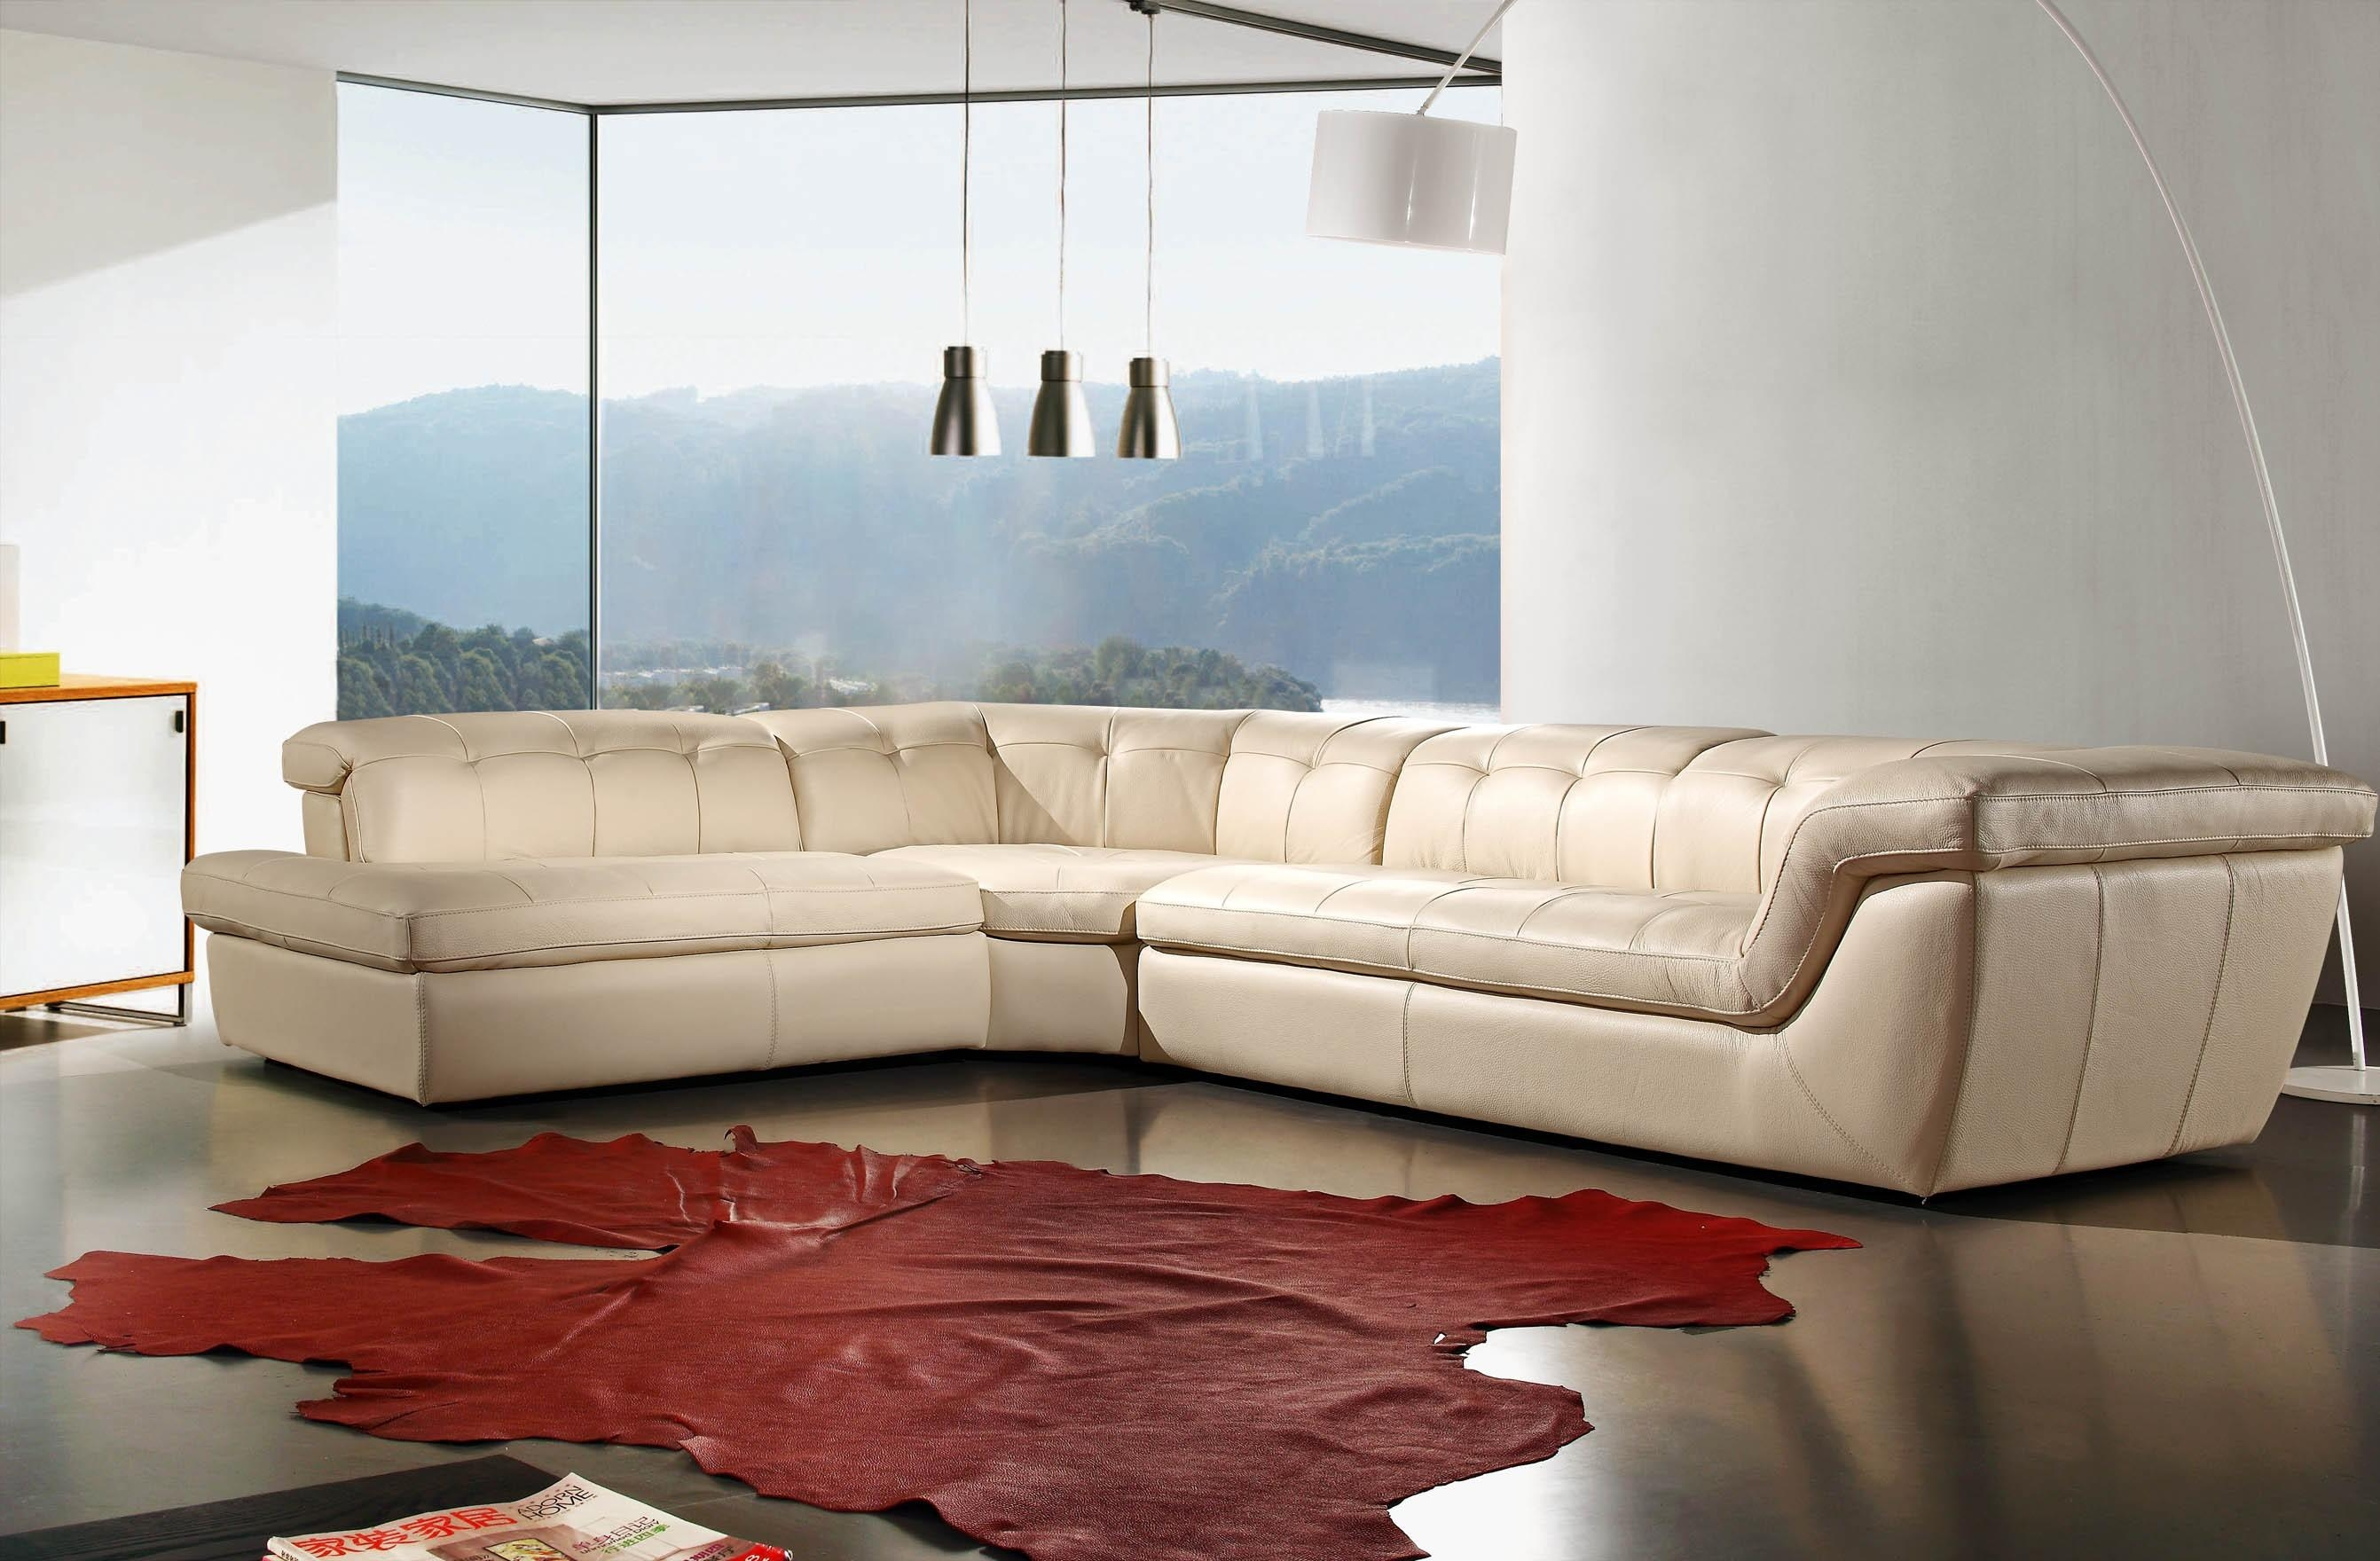 Sofas : Marvelous Wrap Around Couch Sectional Sofa With Chaise 3 Intended For Cream Sectional Leather Sofas (Image 22 of 22)